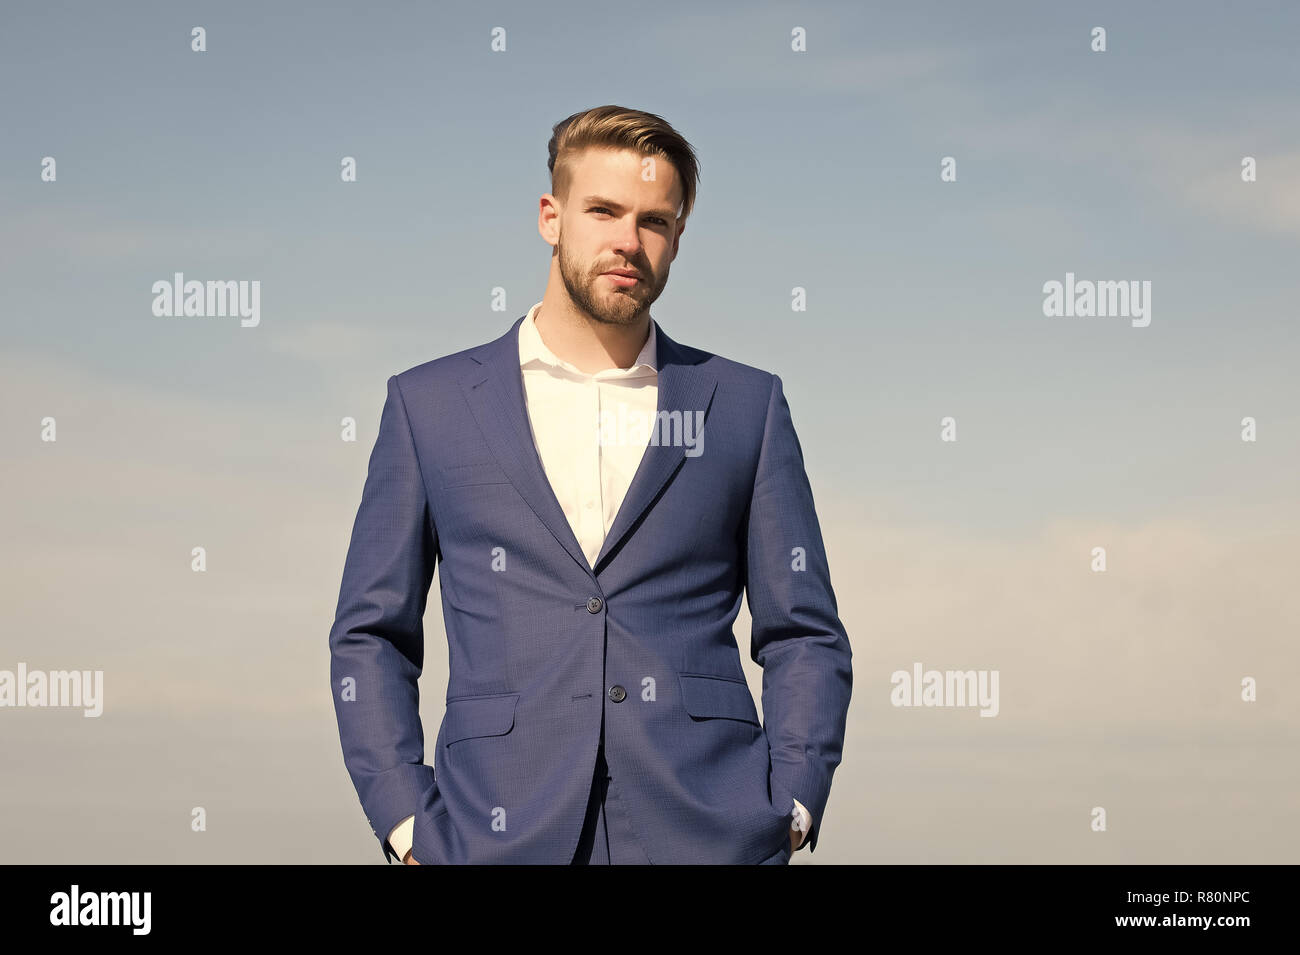 Freedom Coat Stand Man In Business Suit Fashion Businessman Stand On Blue Sky